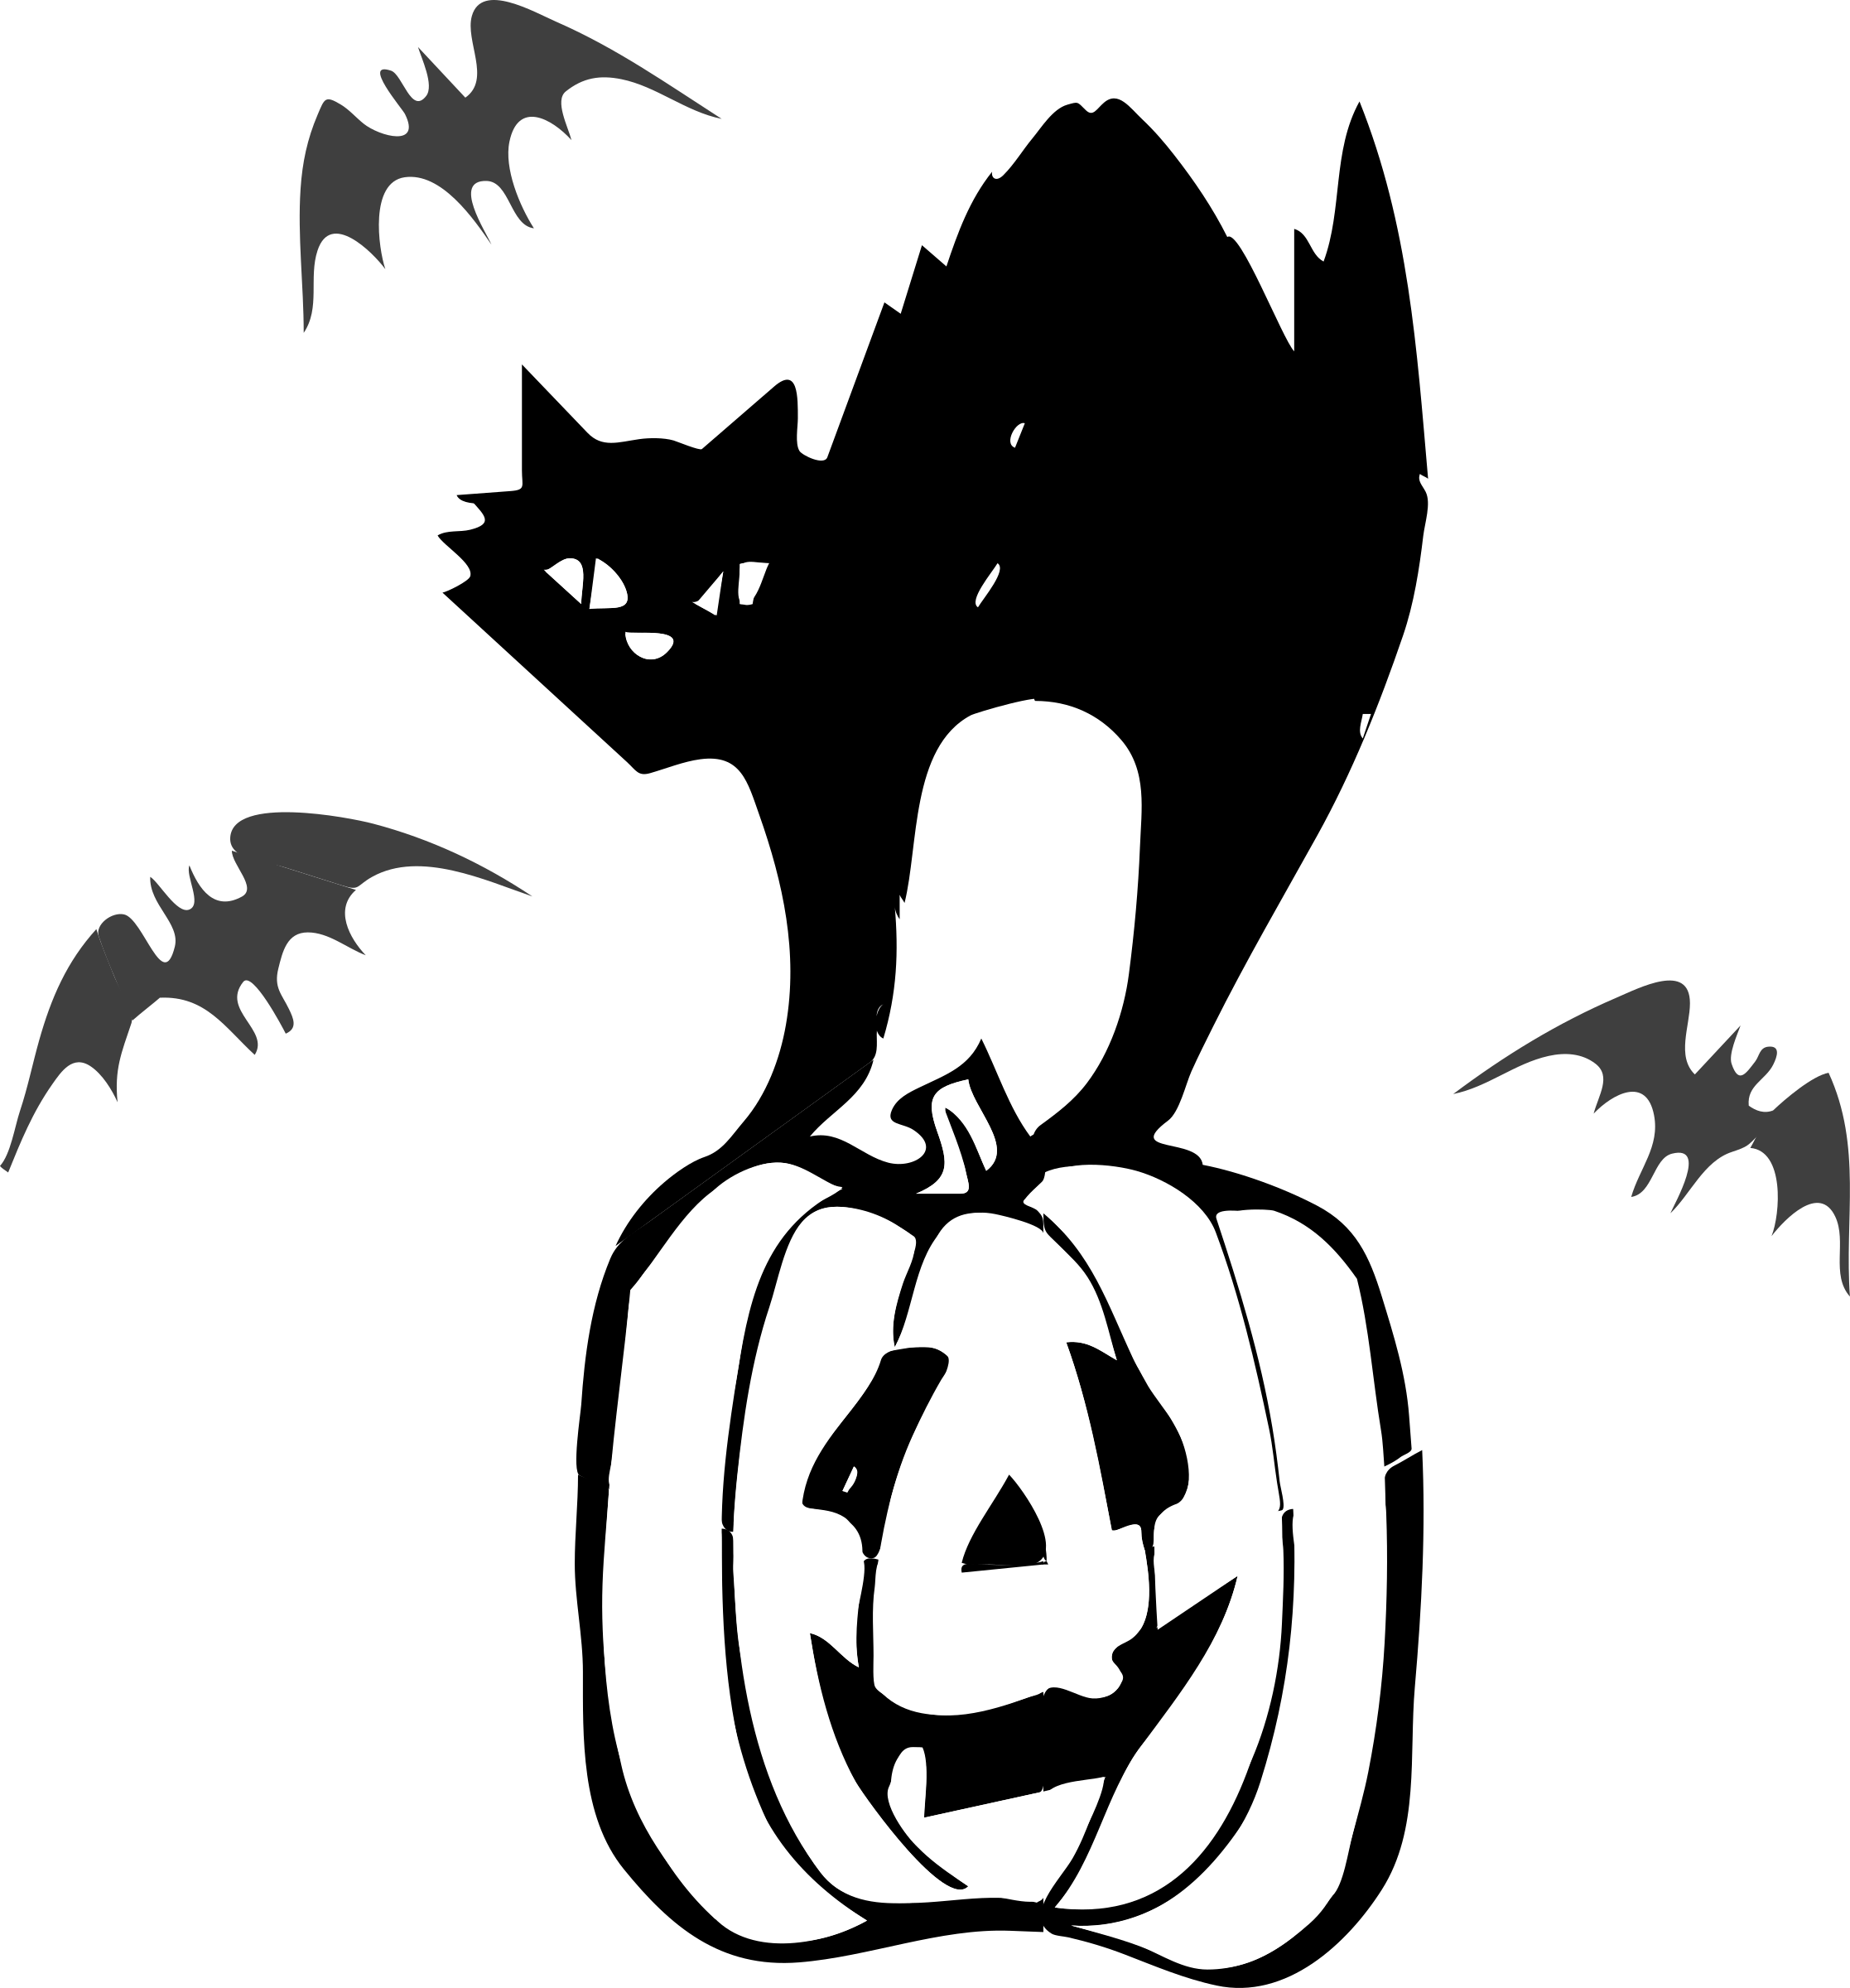 Clipart - Architetto Gatto nero (Black Cat Halloween) clip art library library